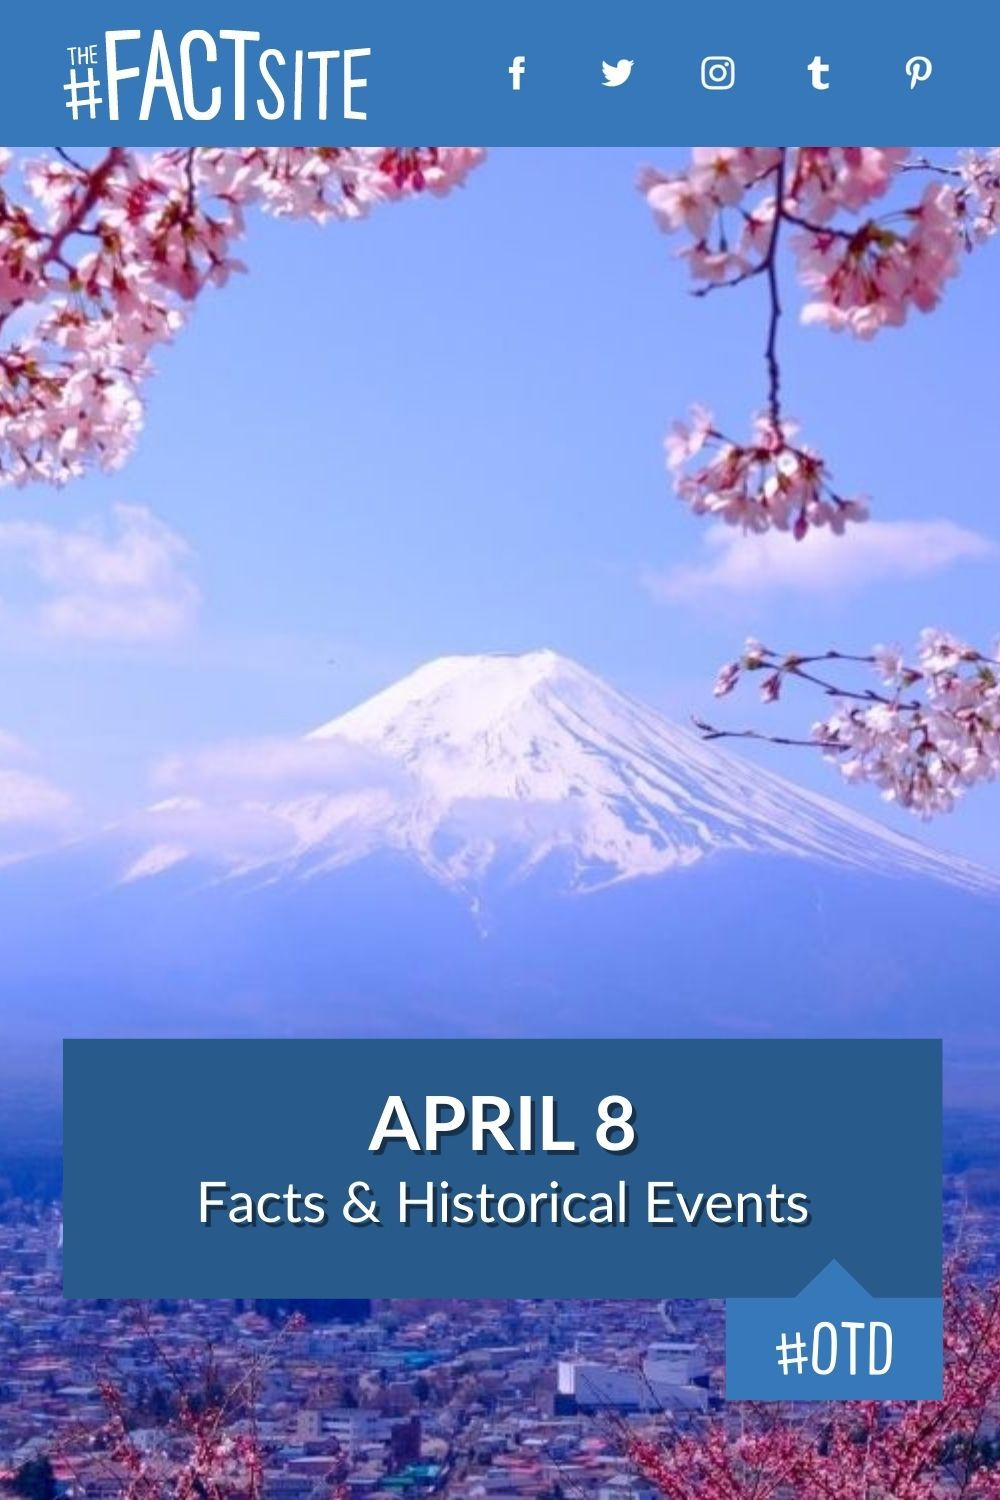 Facts & Historic Events That Happened on April 8